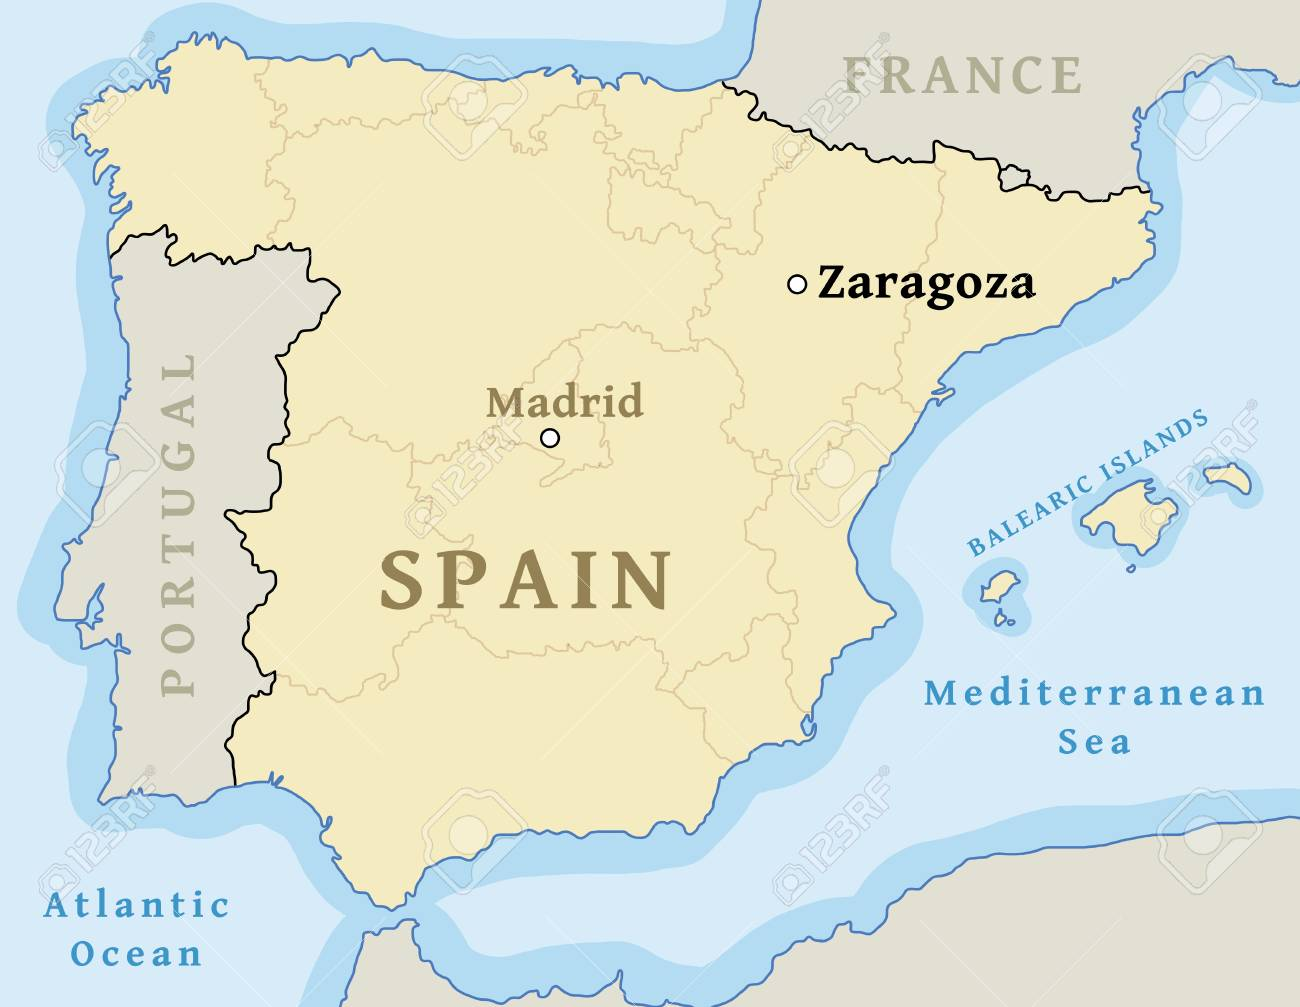 Zaragoza Map Of Spain.Zaragoza Map Location Find City On Map Of Spain Vector Illustration